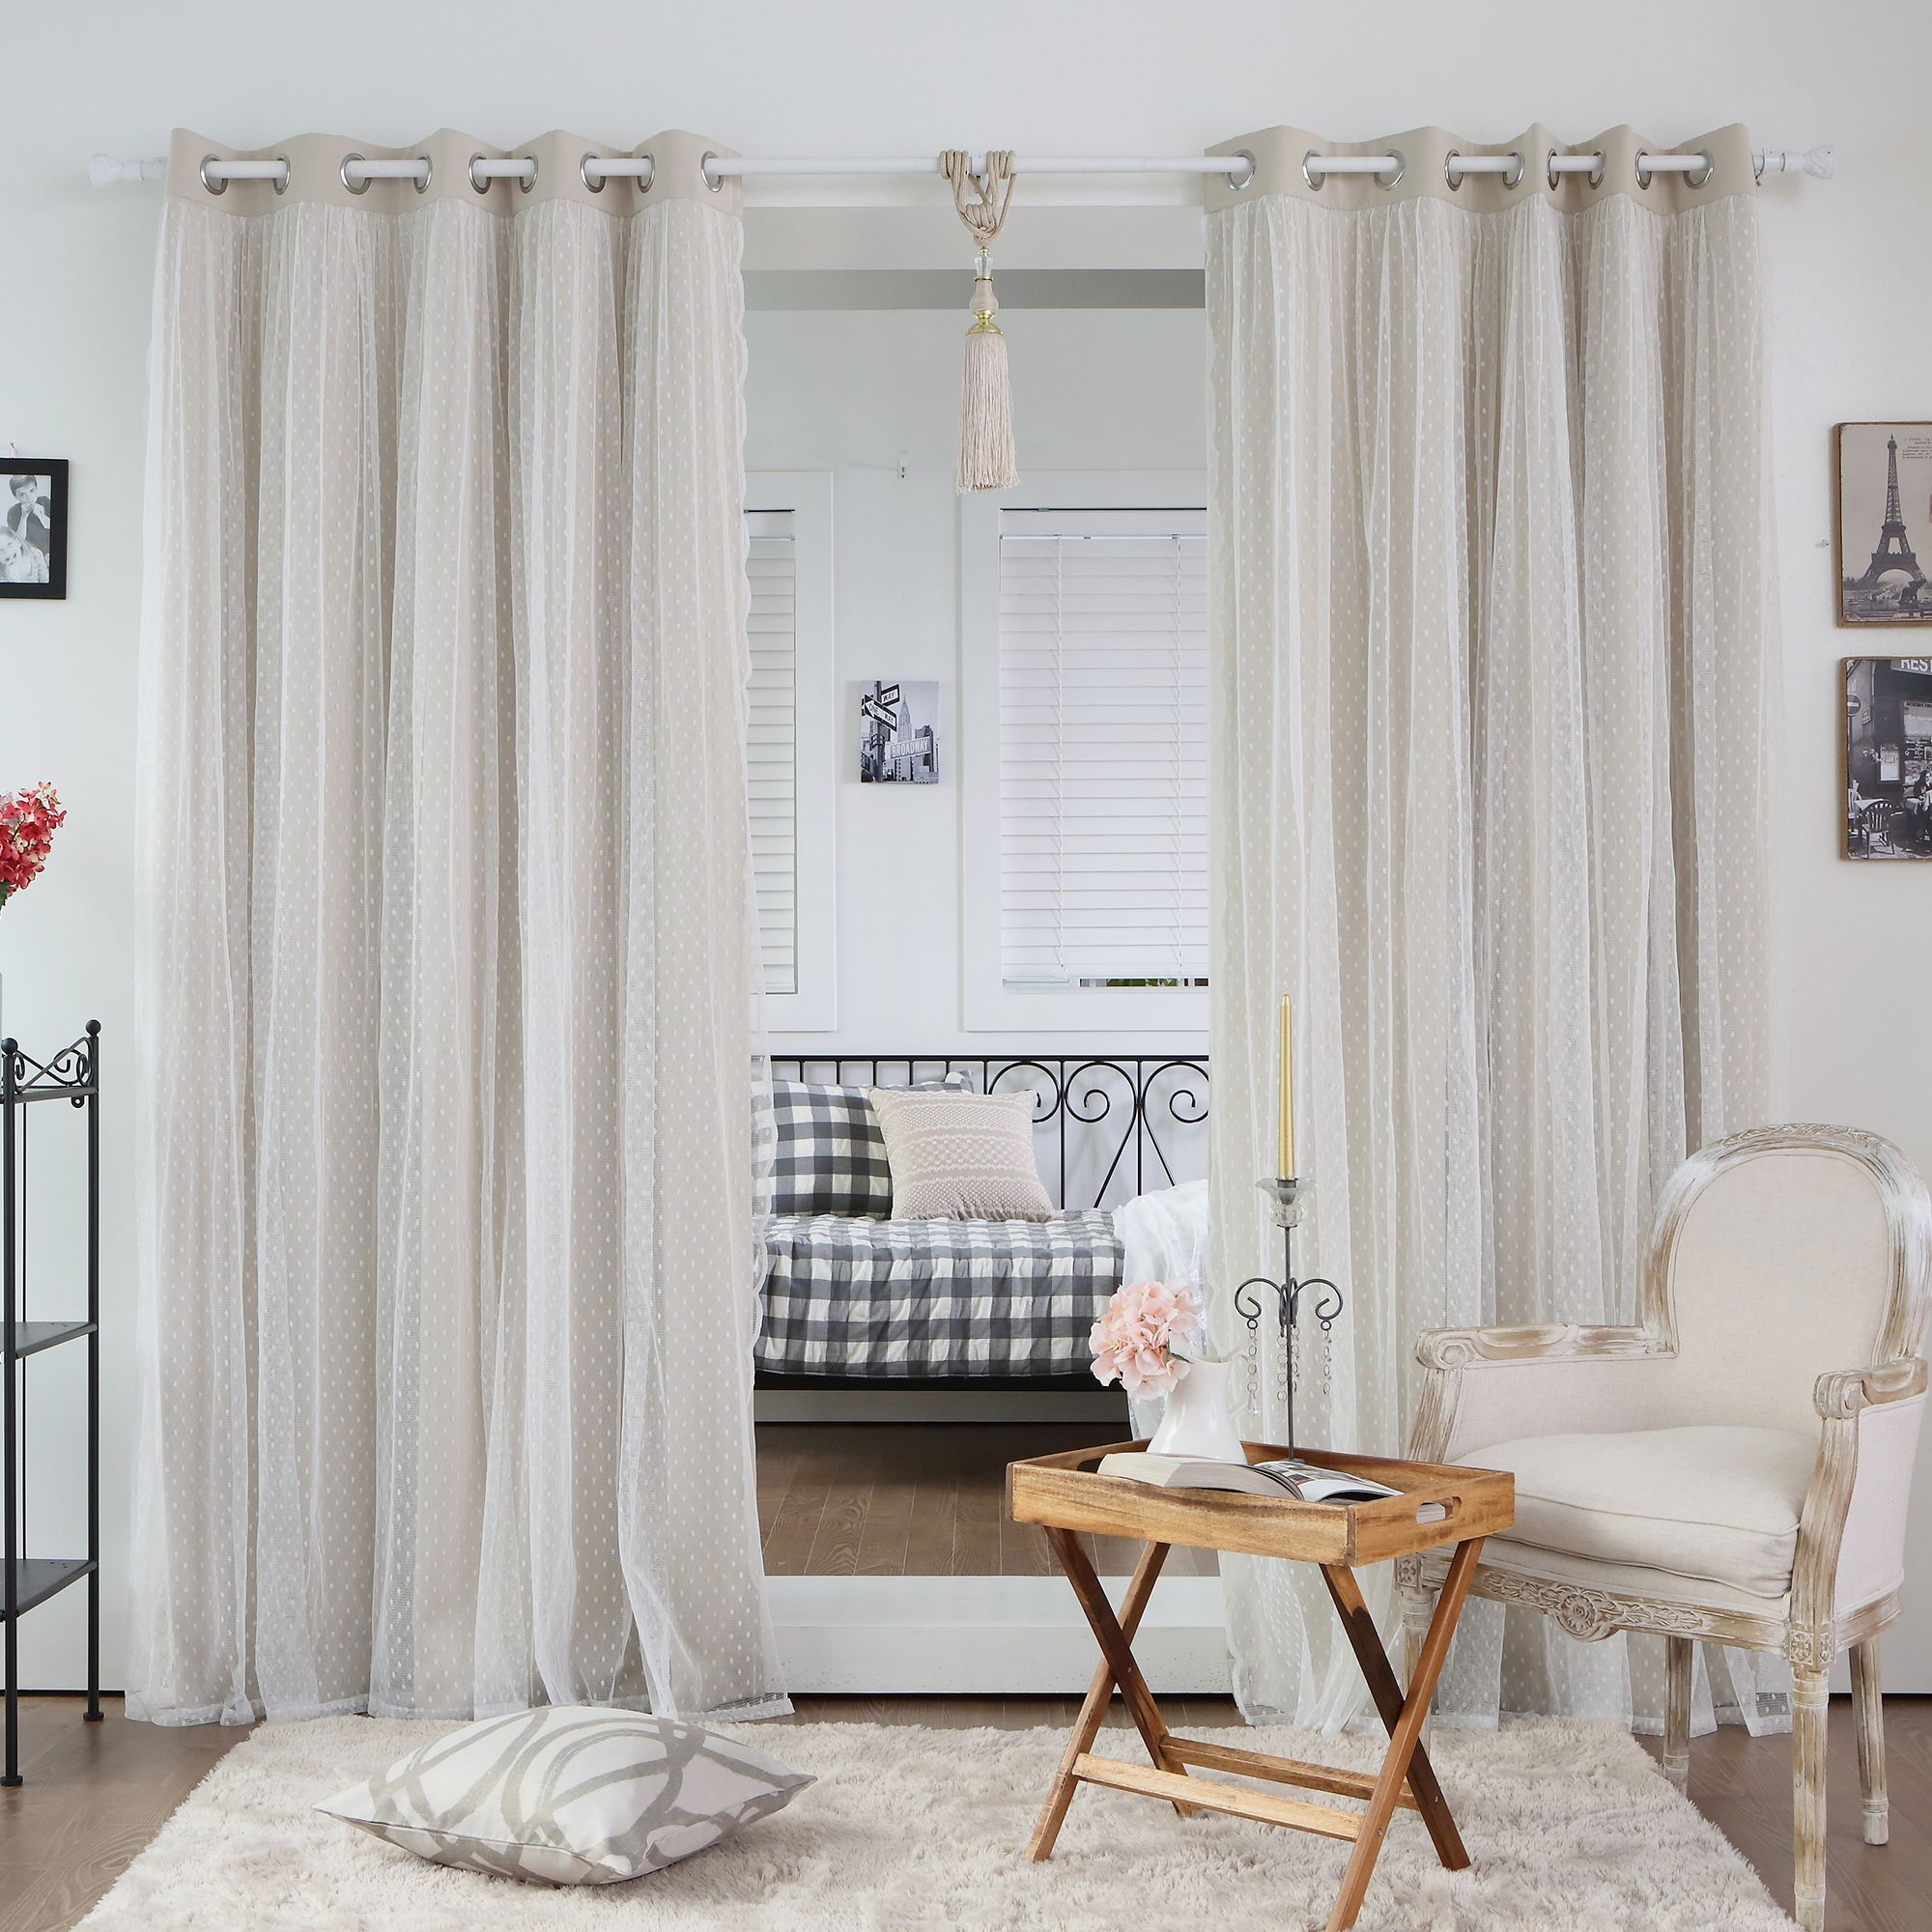 Stylish and functional, these curtains are Ideal for late sleepers ...